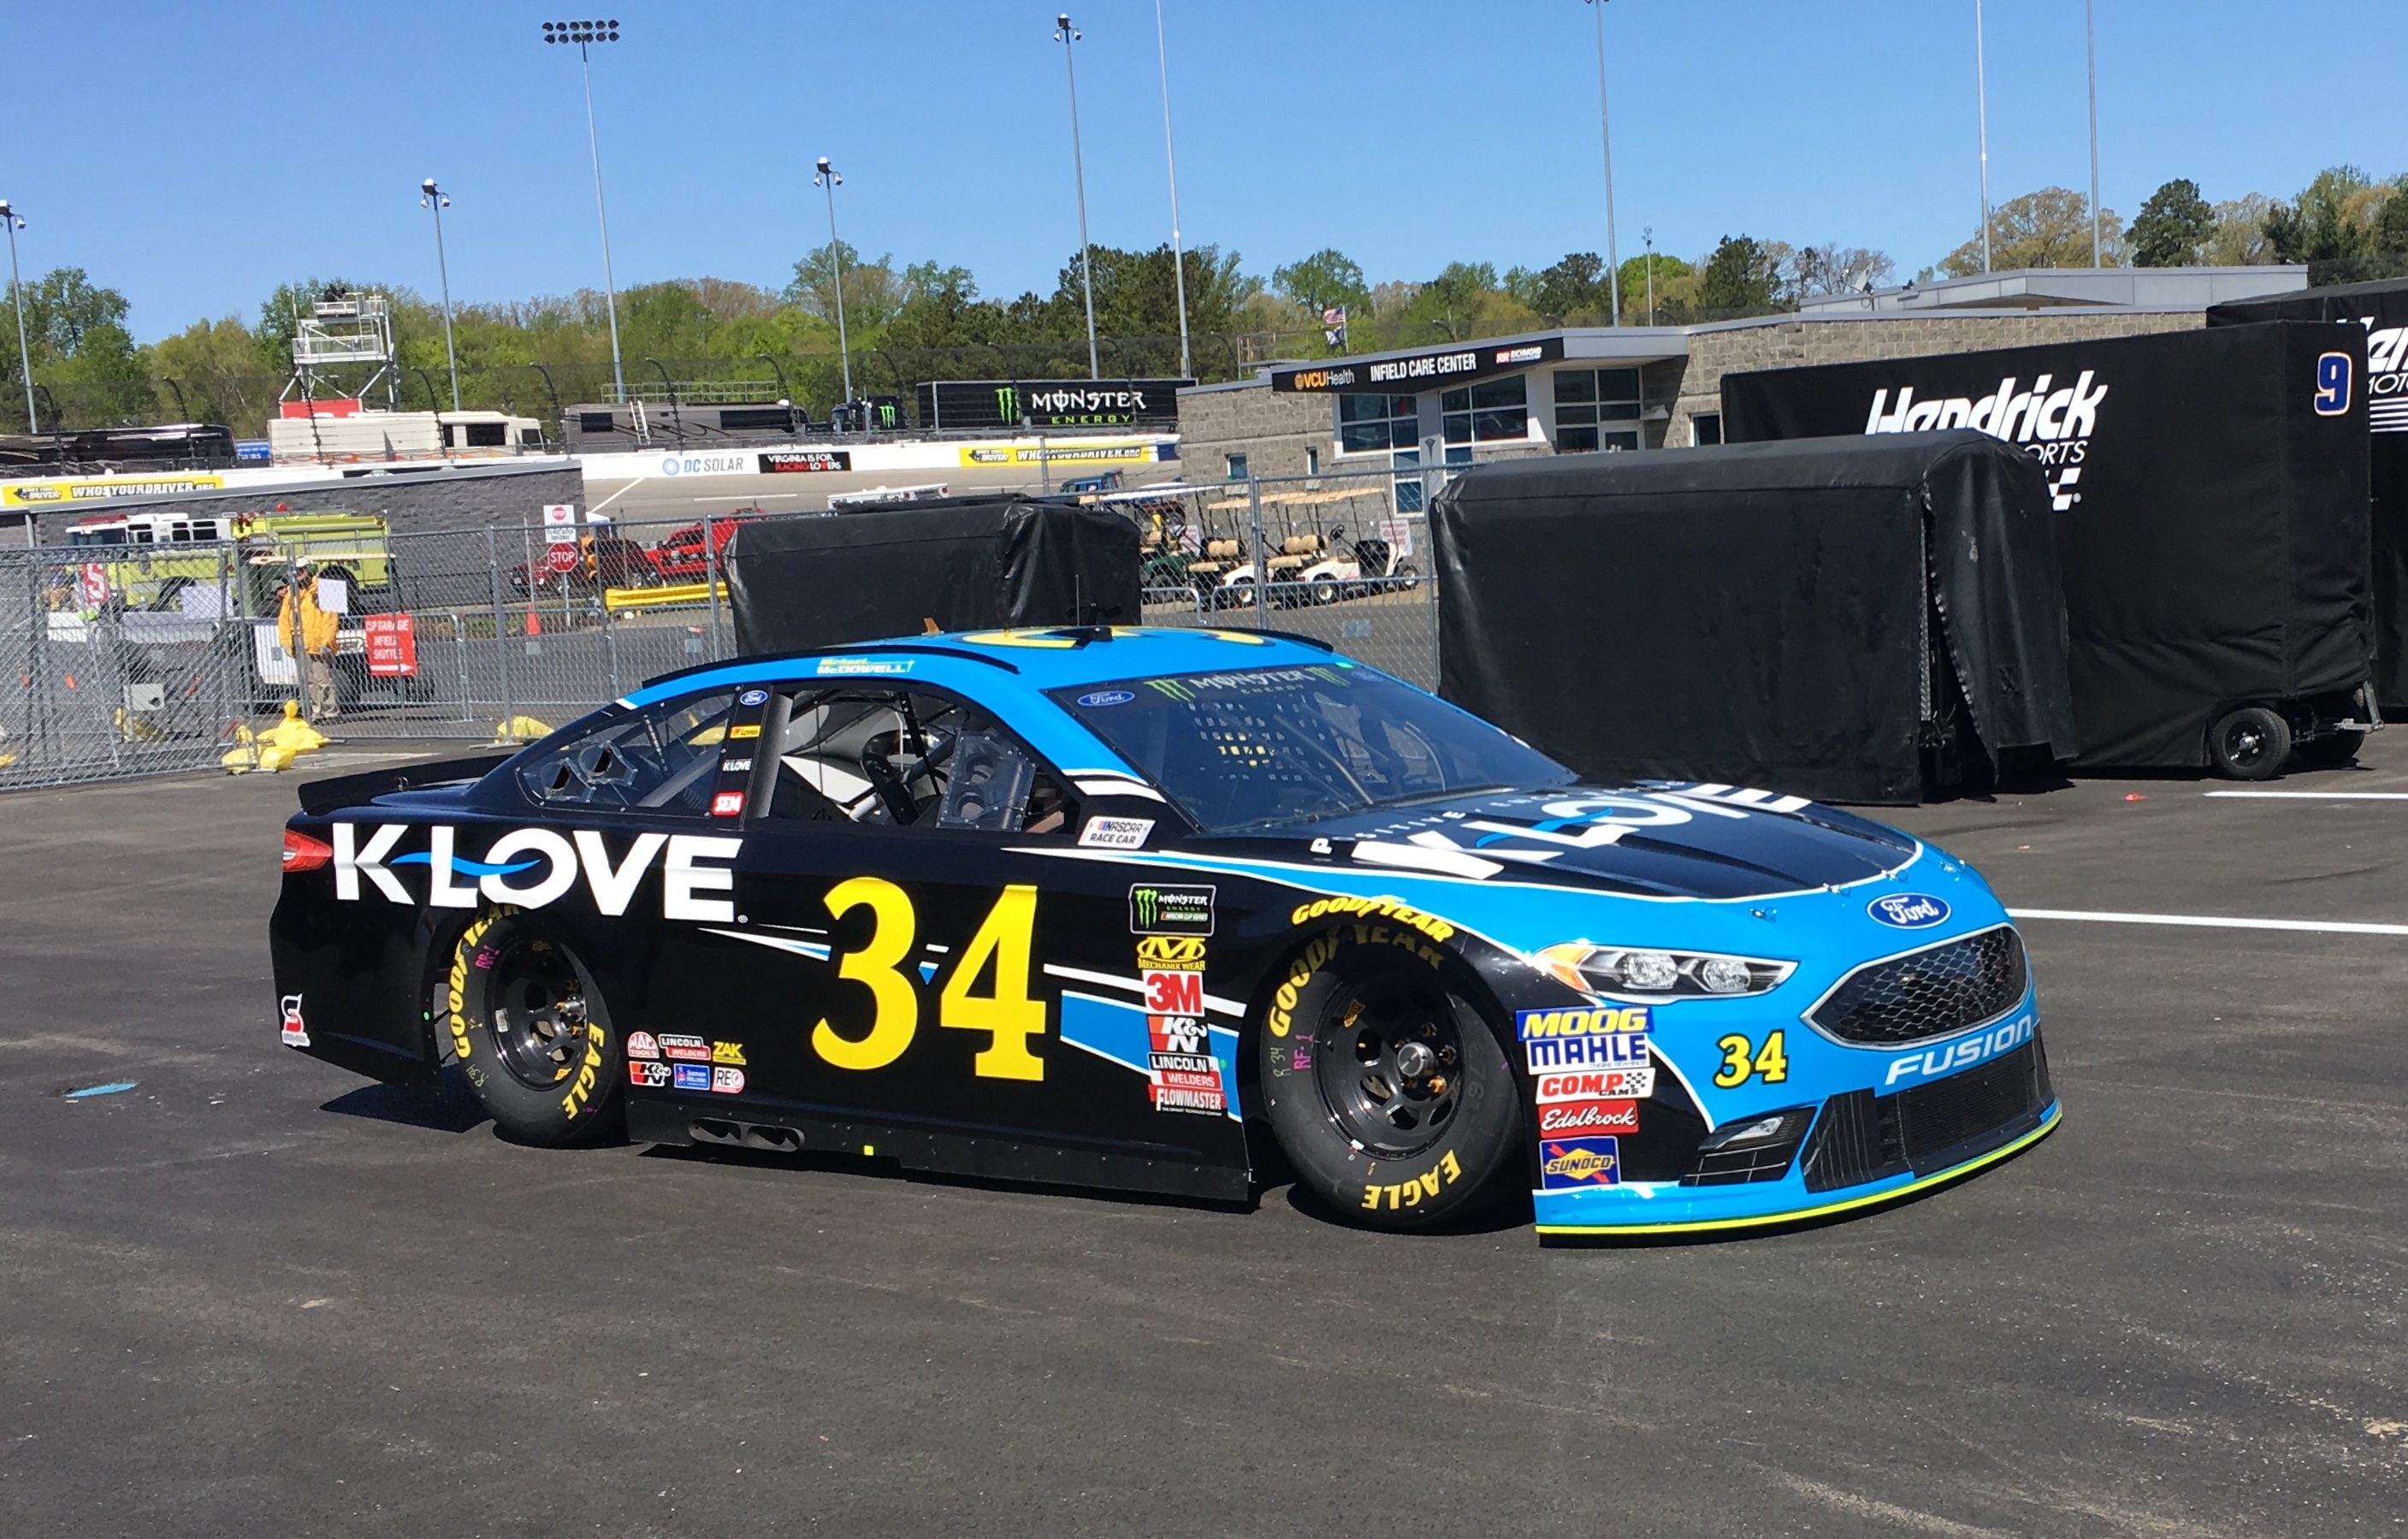 Michael McDowell - NASCAR - K Love #34 as featured on Jesus Calling podcast